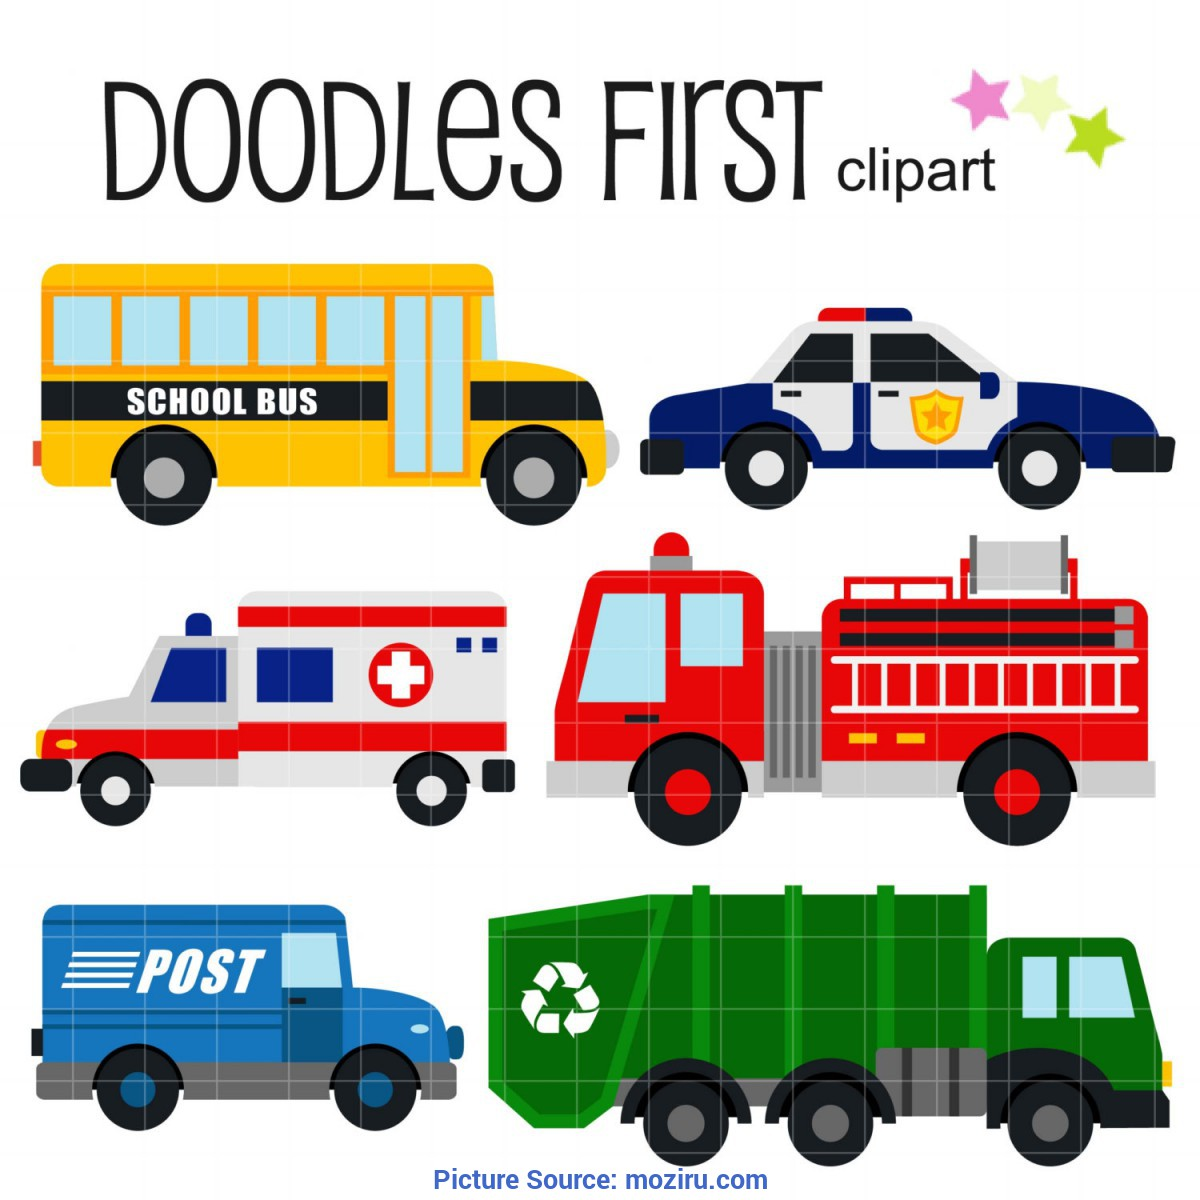 Interesting Community Helpers Vehicles Vehicle Clipart